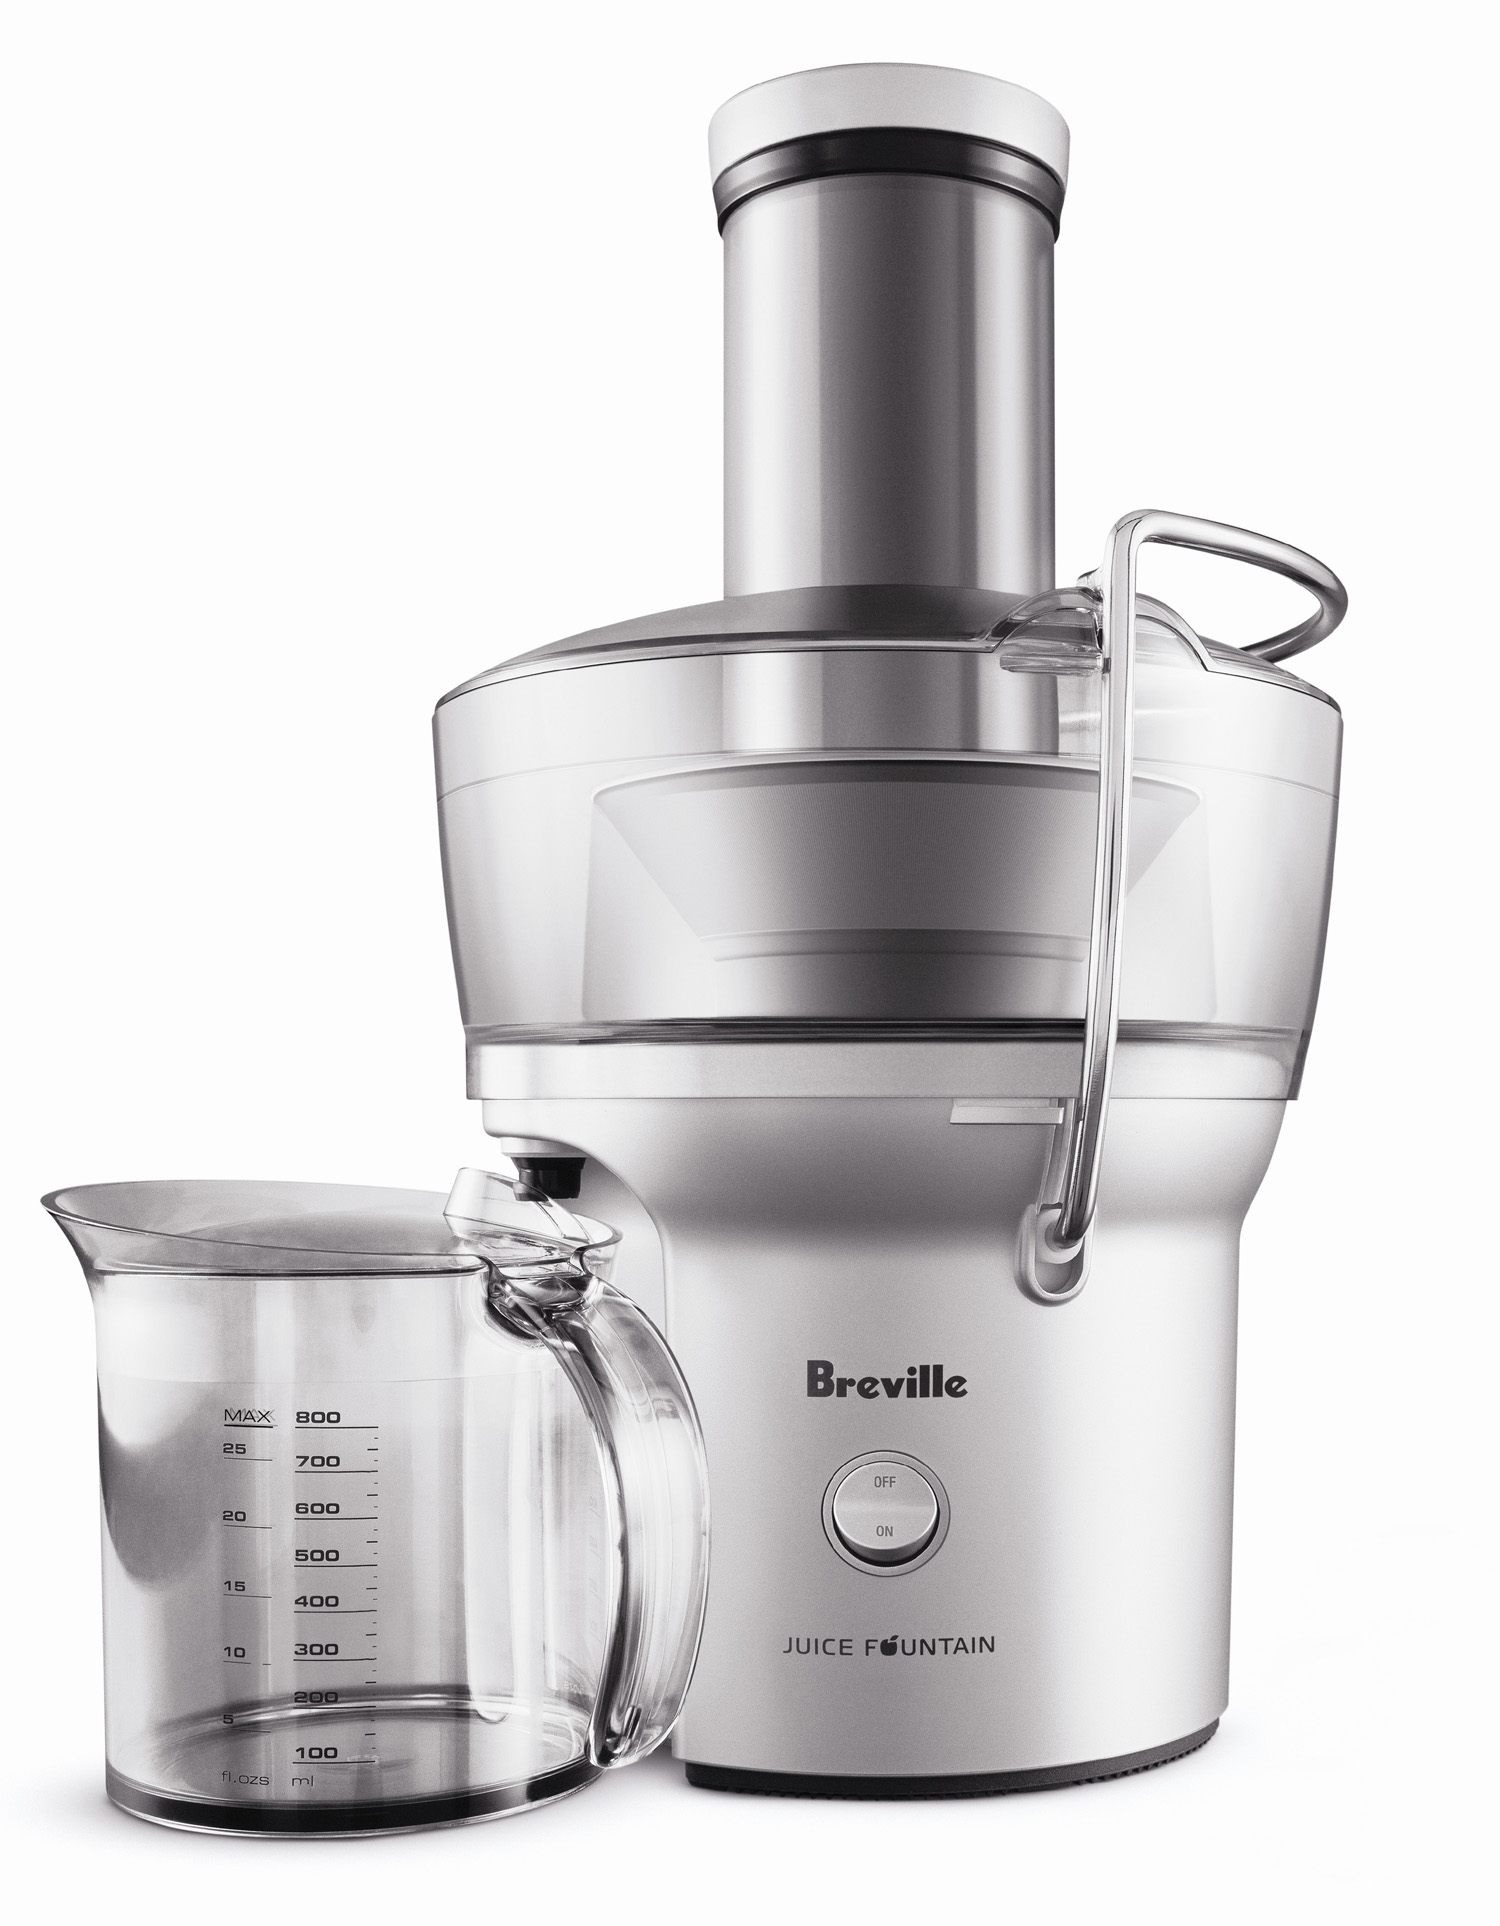 Breville Juice Fountain Compact Electric Juicer with 0.5 Liter Carafe